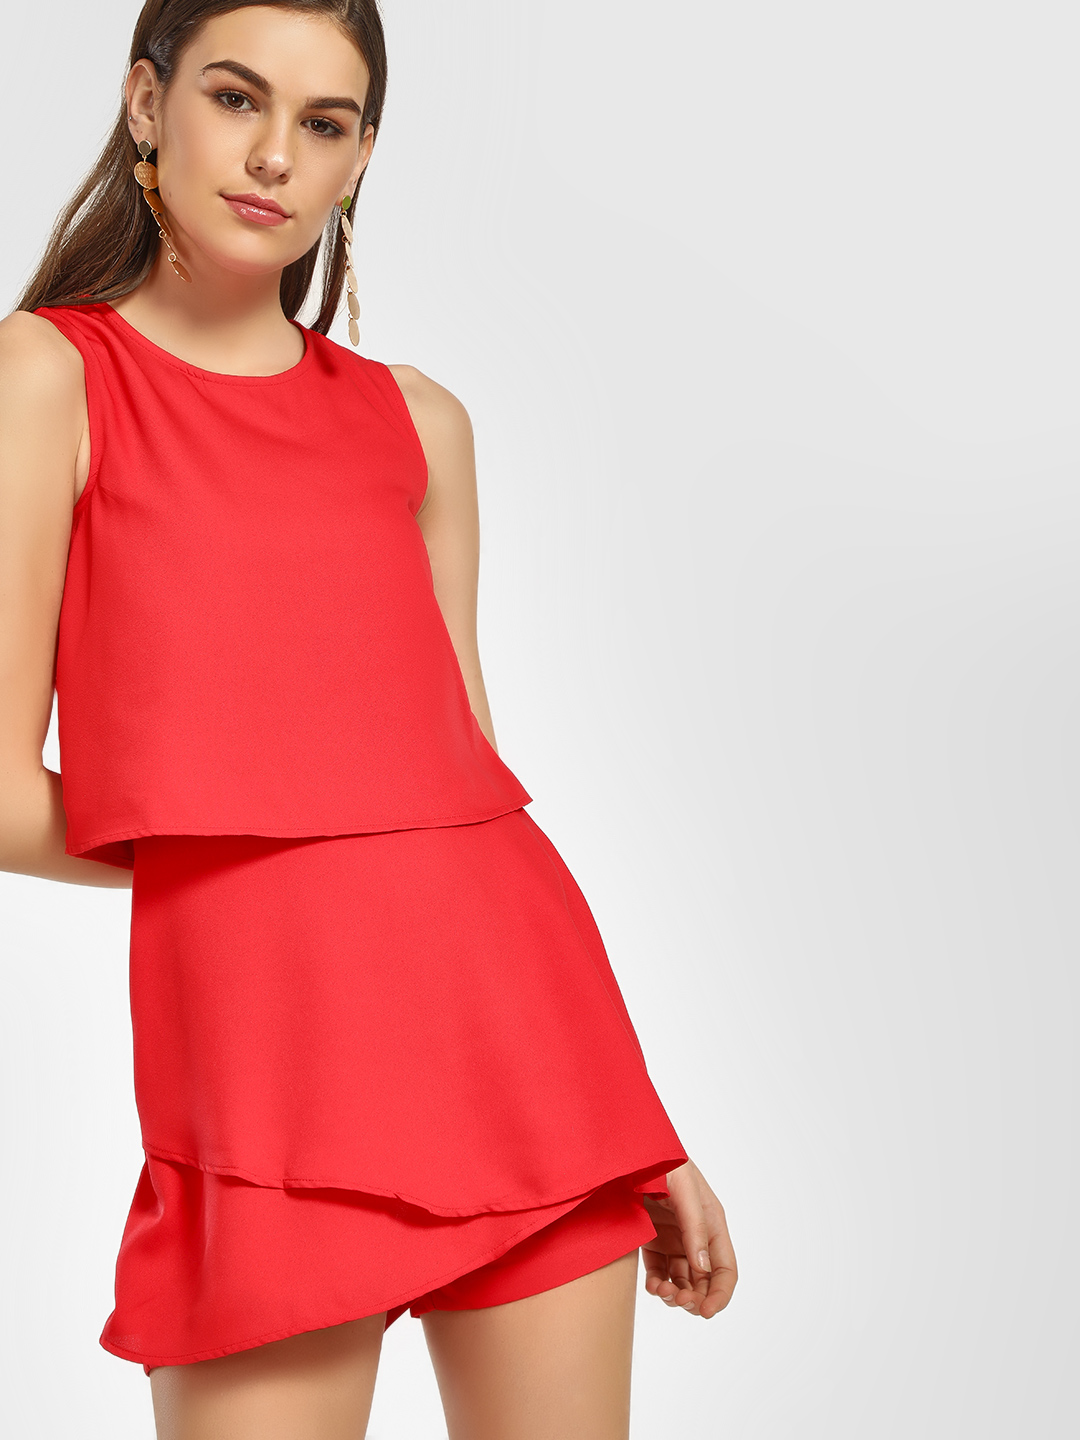 HEY Red Overlay Sleeveless Playsuit 1